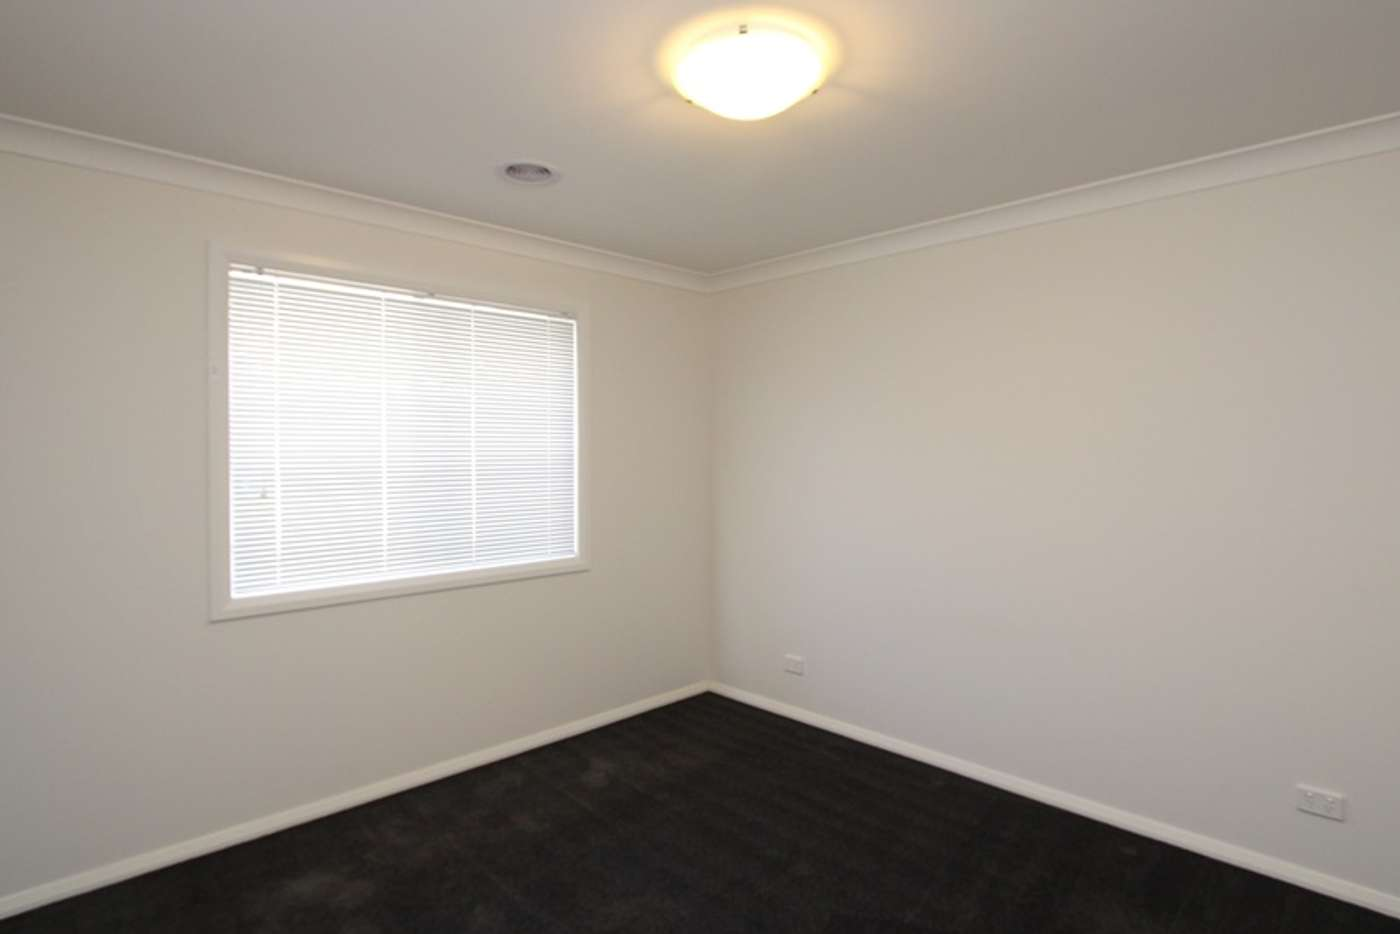 Sixth view of Homely unit listing, 3/26 Pooginook Place, Bourkelands NSW 2650